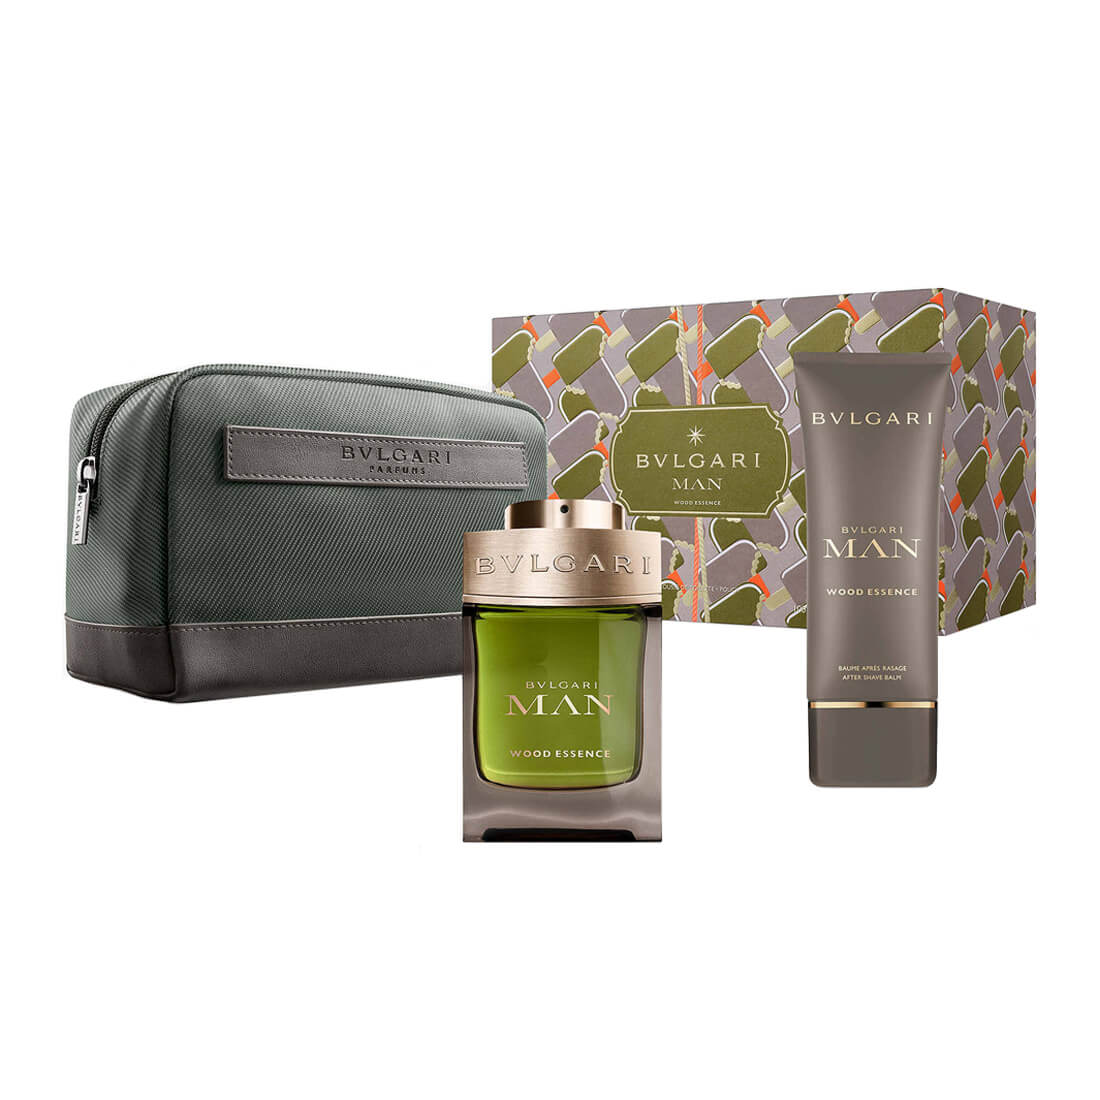 Bvlgari Man Wood Essence Gift Set For Men